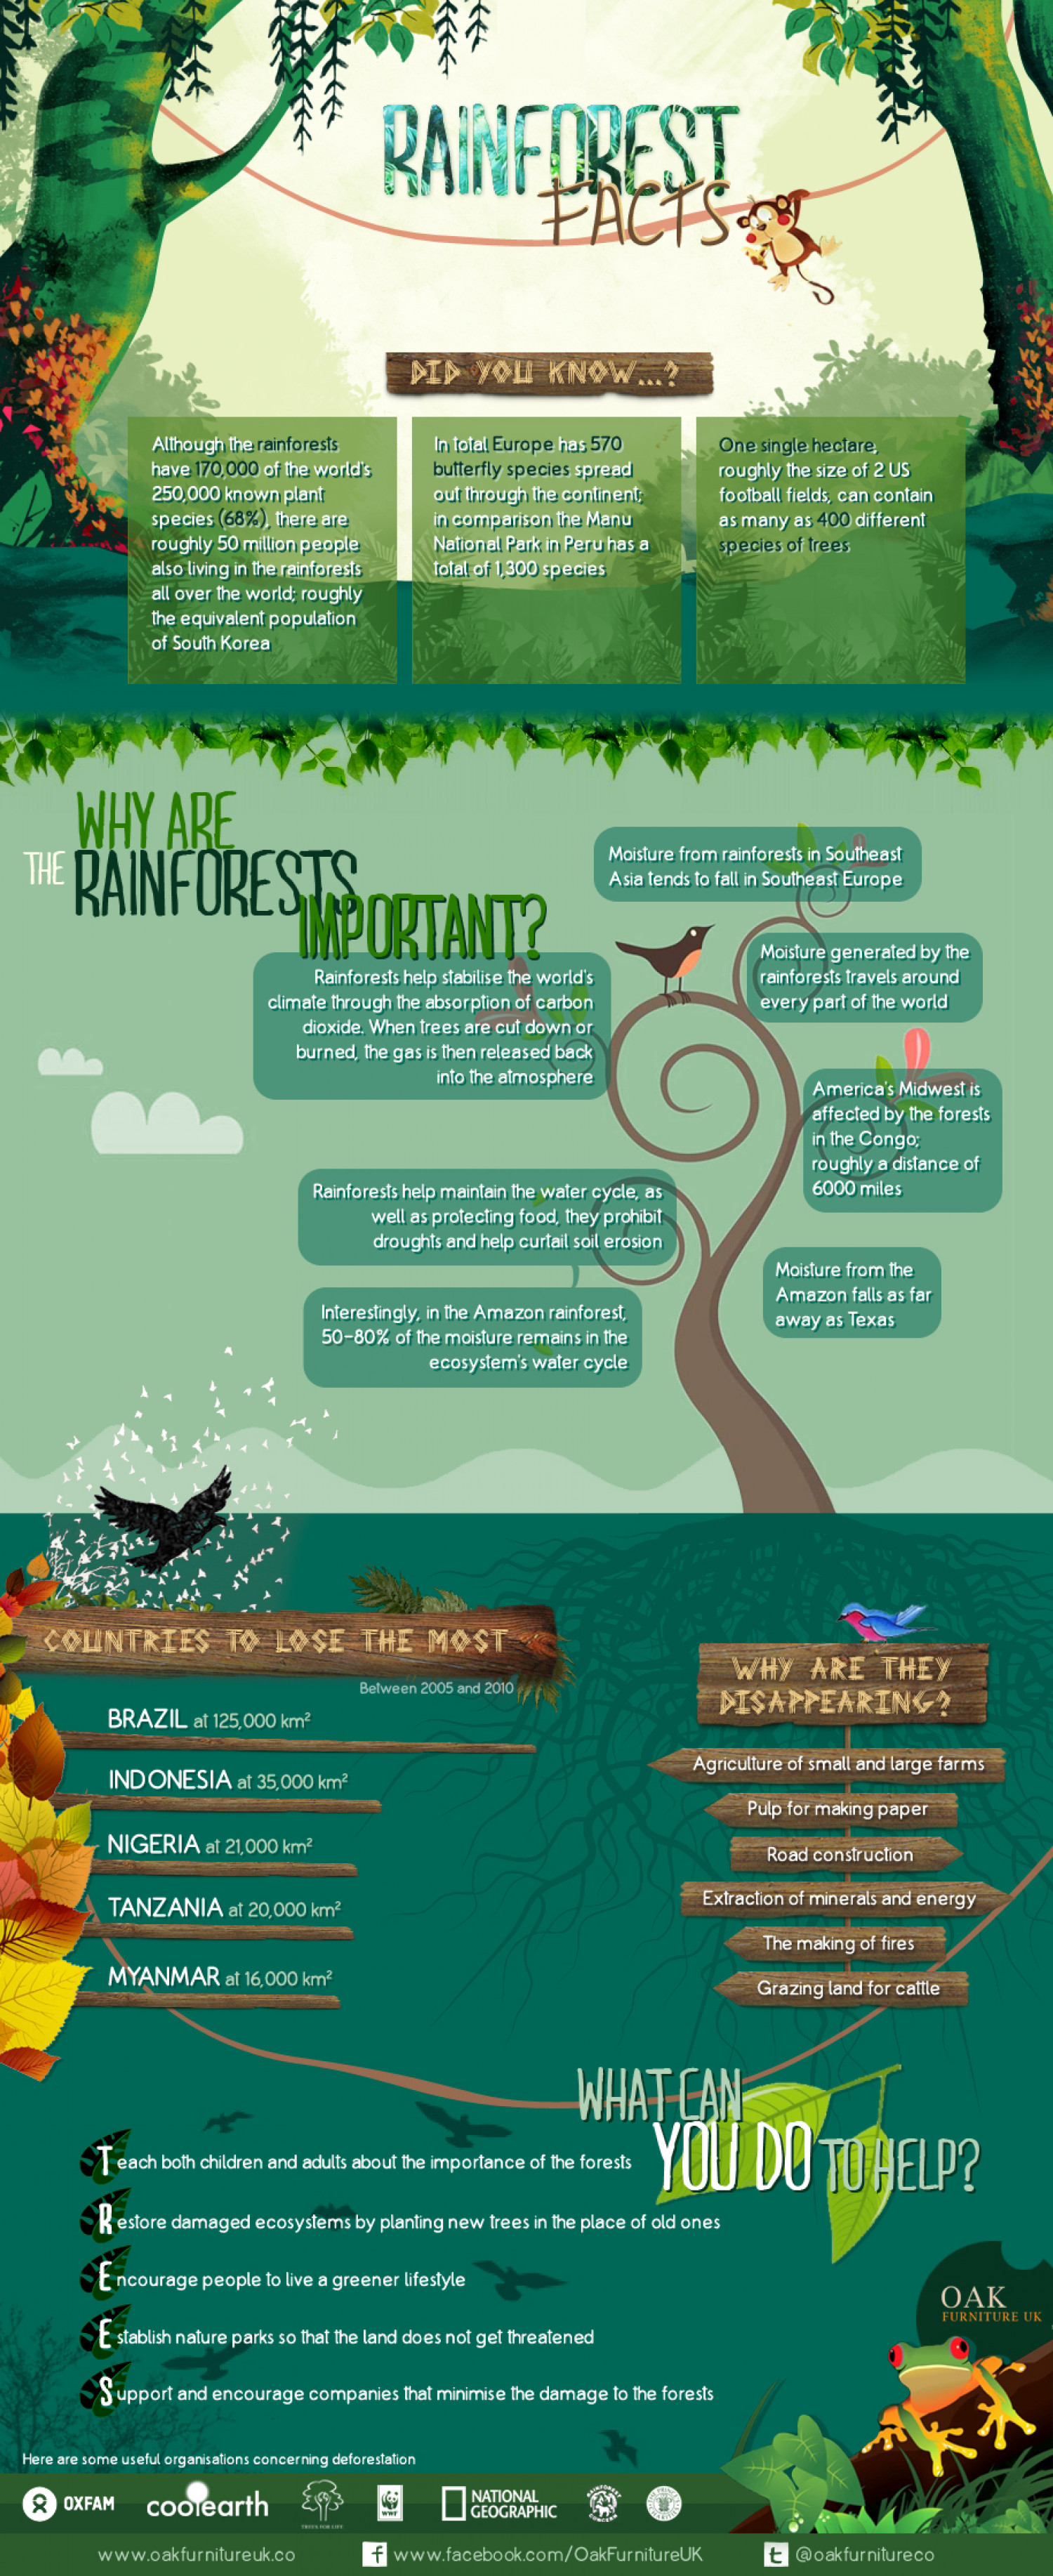 Rainforest Facts Infographic